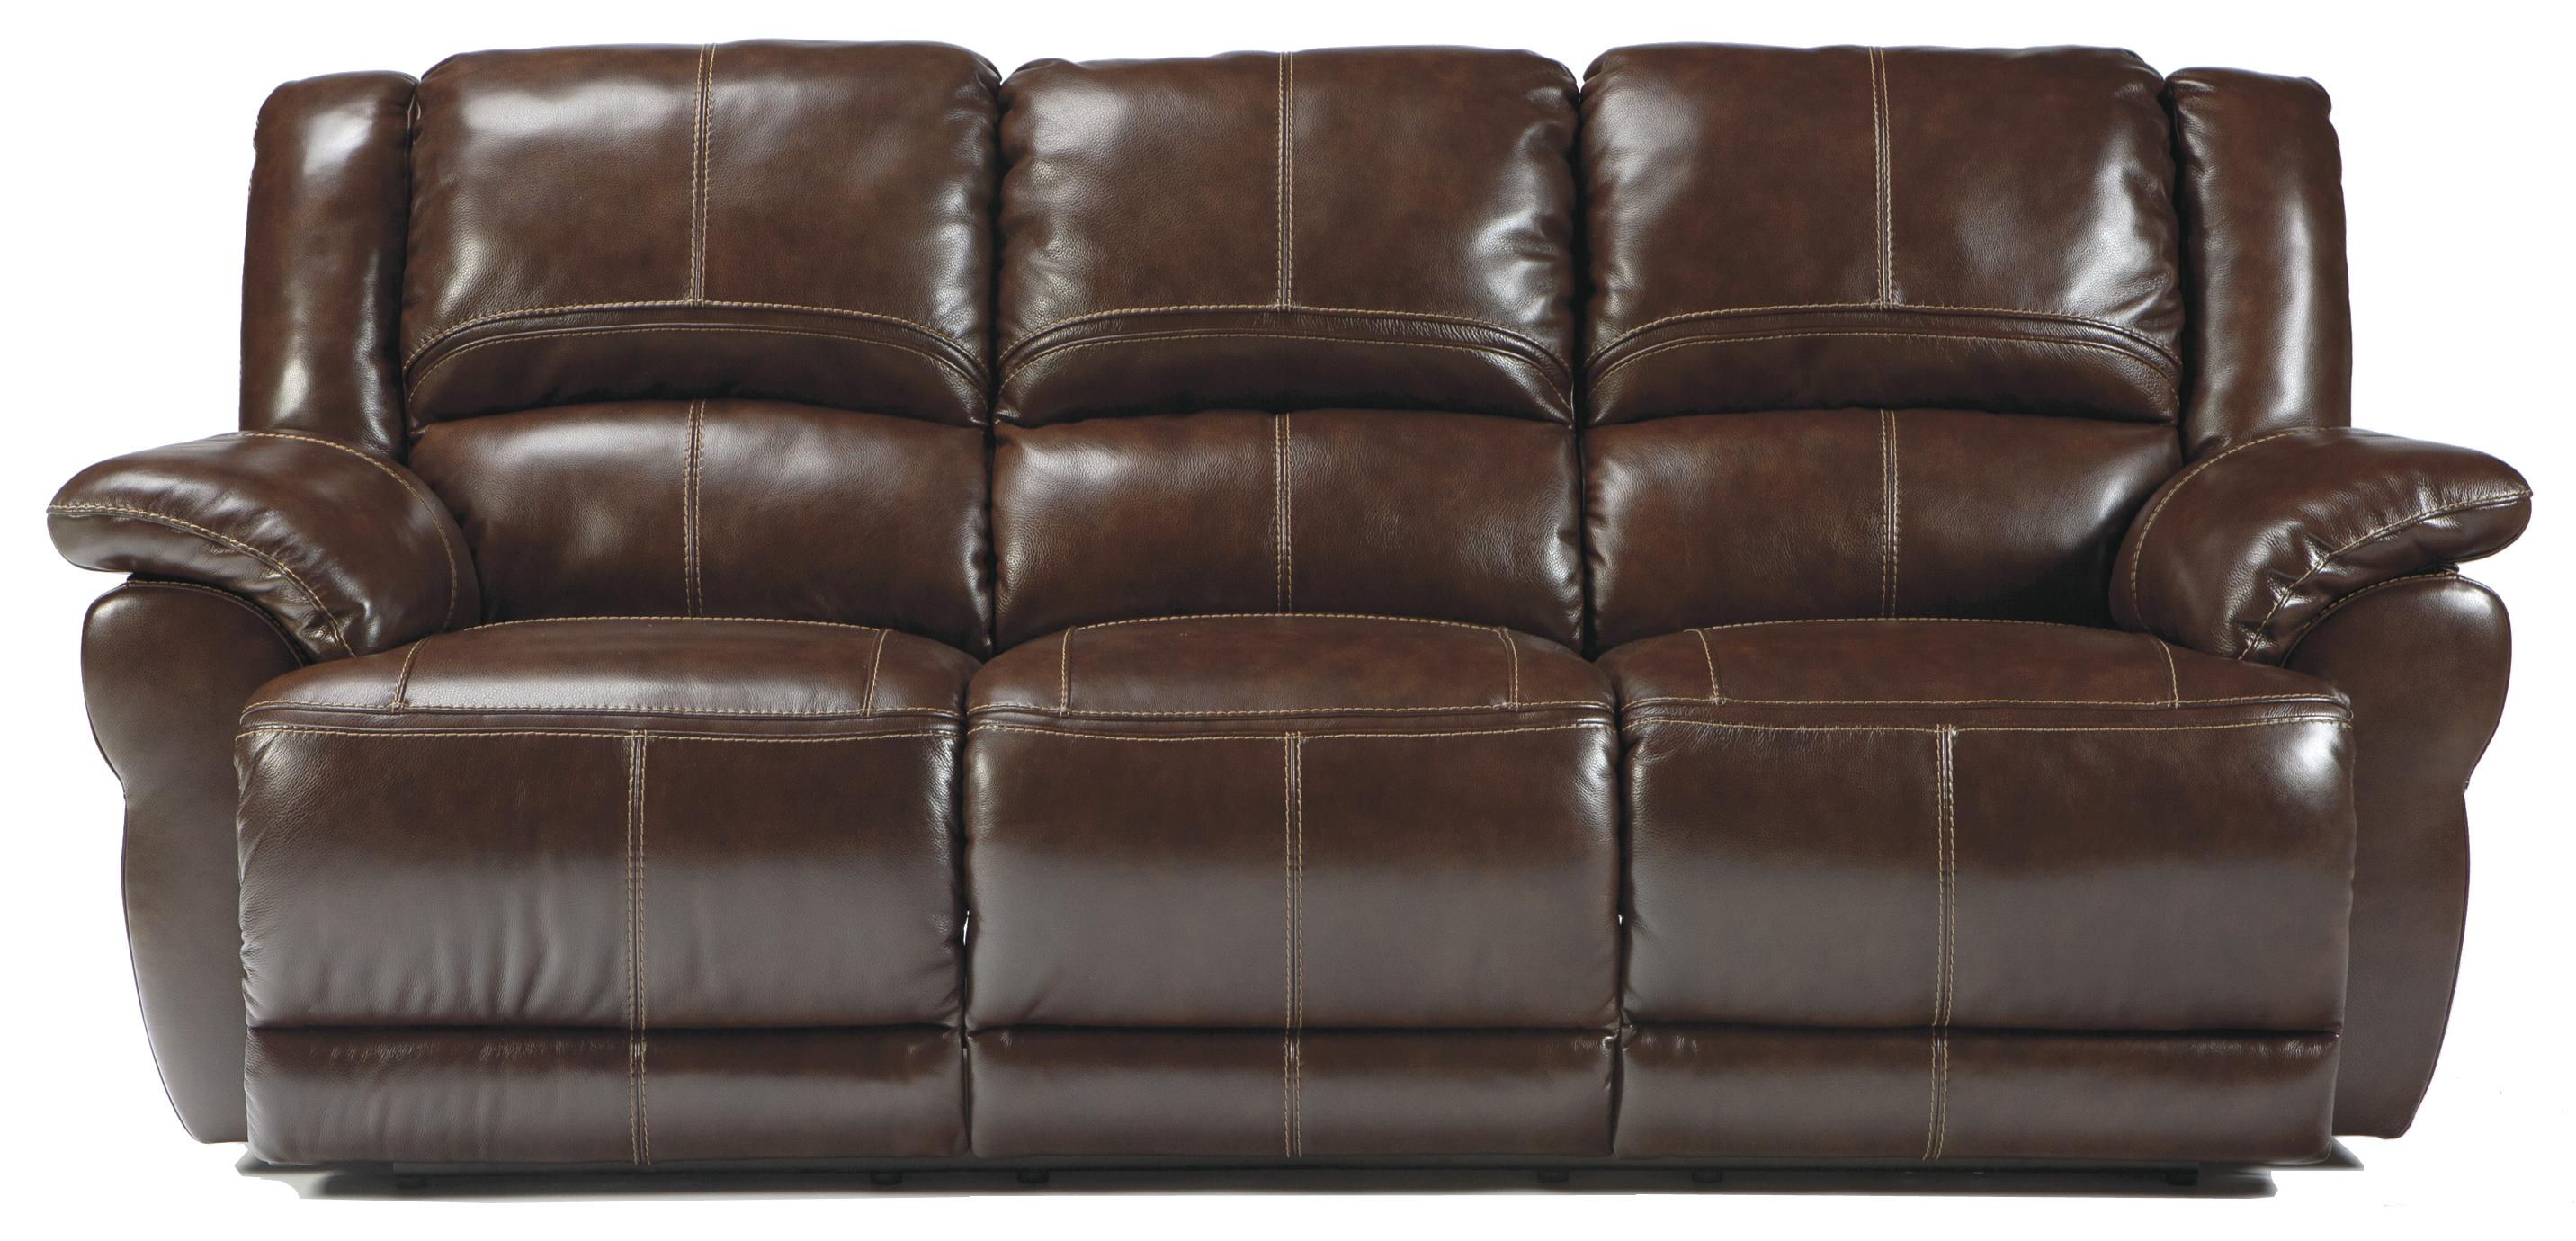 Signature Design by Ashley Lenoris - Coffee Reclining Sofa - Item Number: U9890188